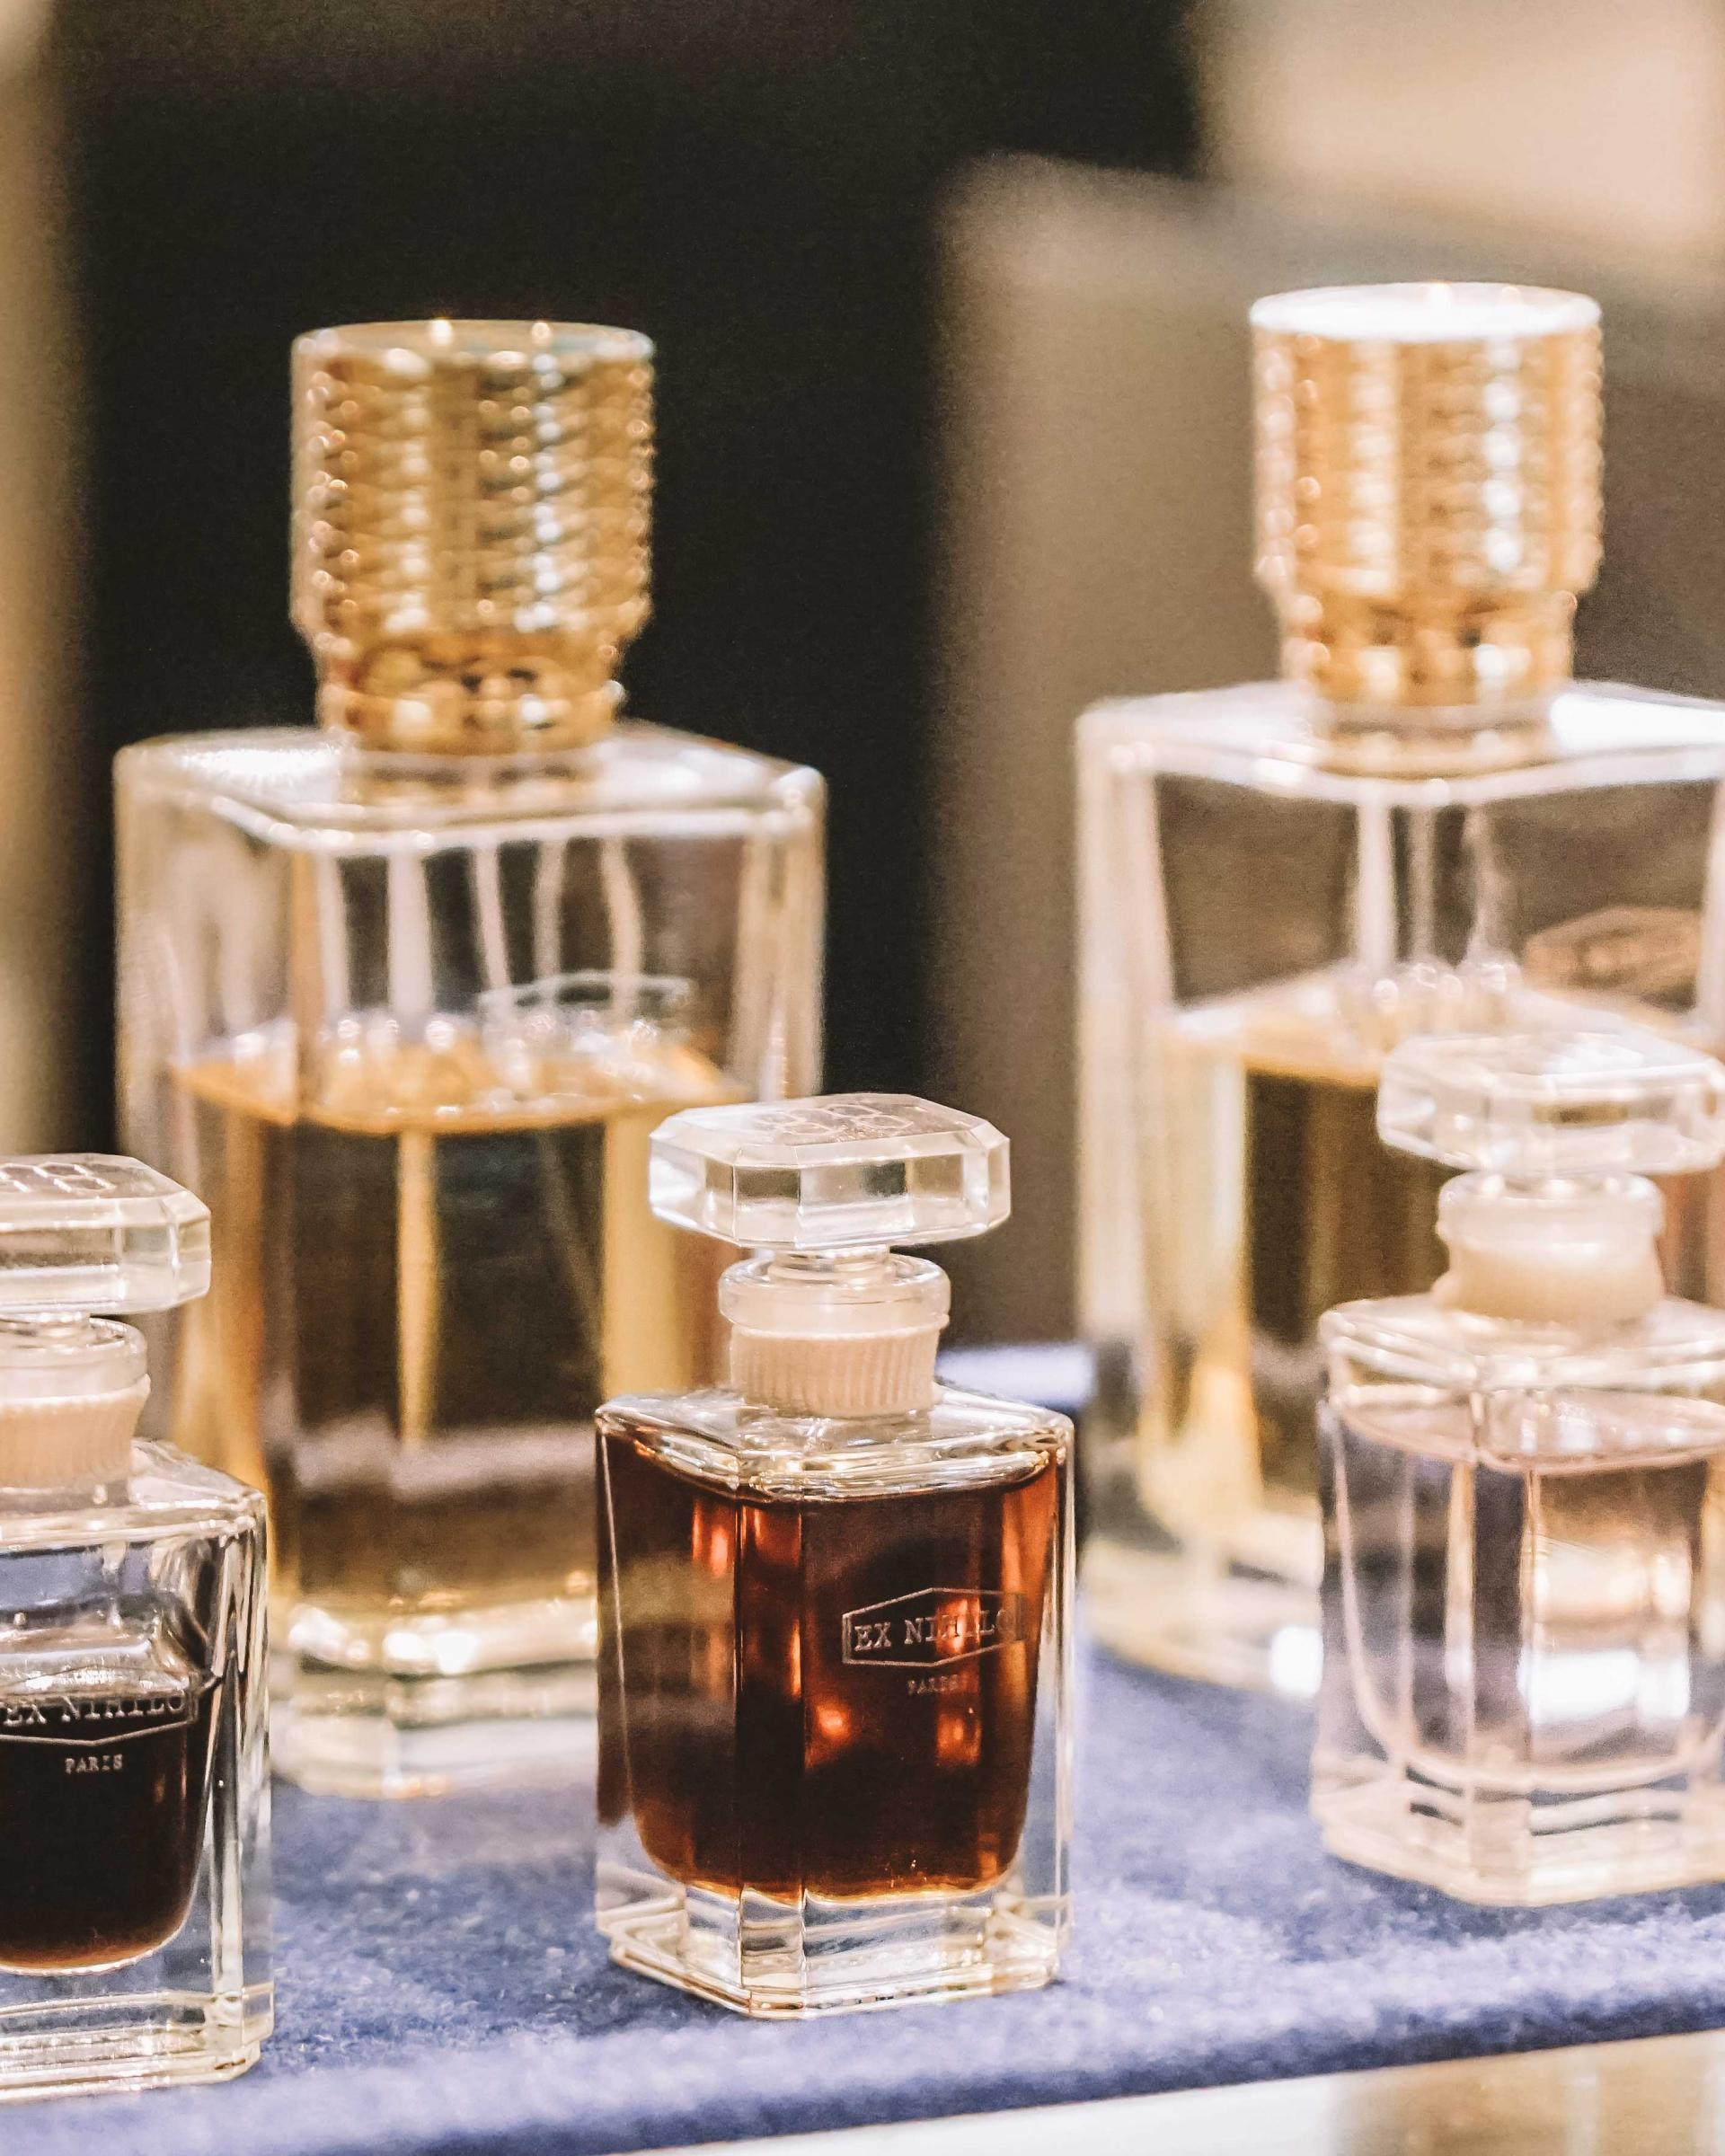 customize your own perfume in paris